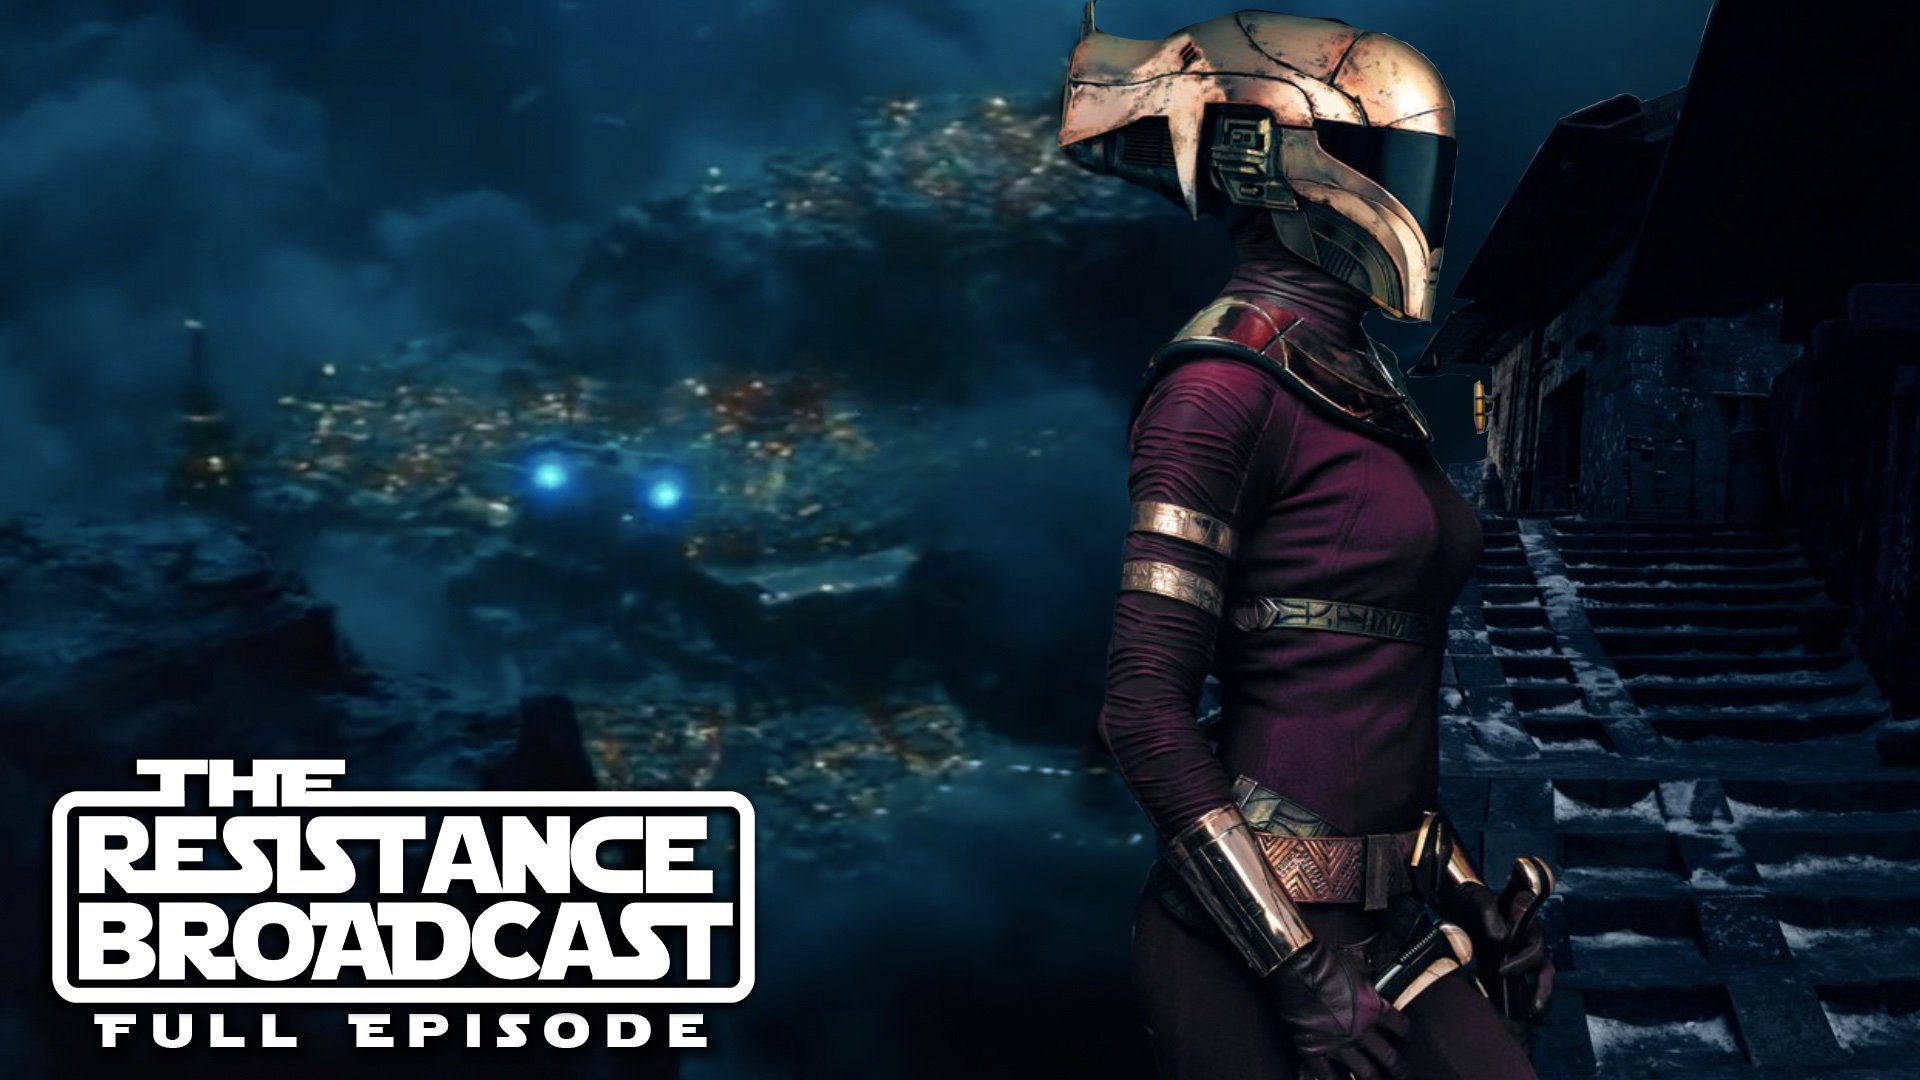 The Resistance Broadcast What S The Zorri With Star Wars The Rise Of Skywalker Star Wars News Net